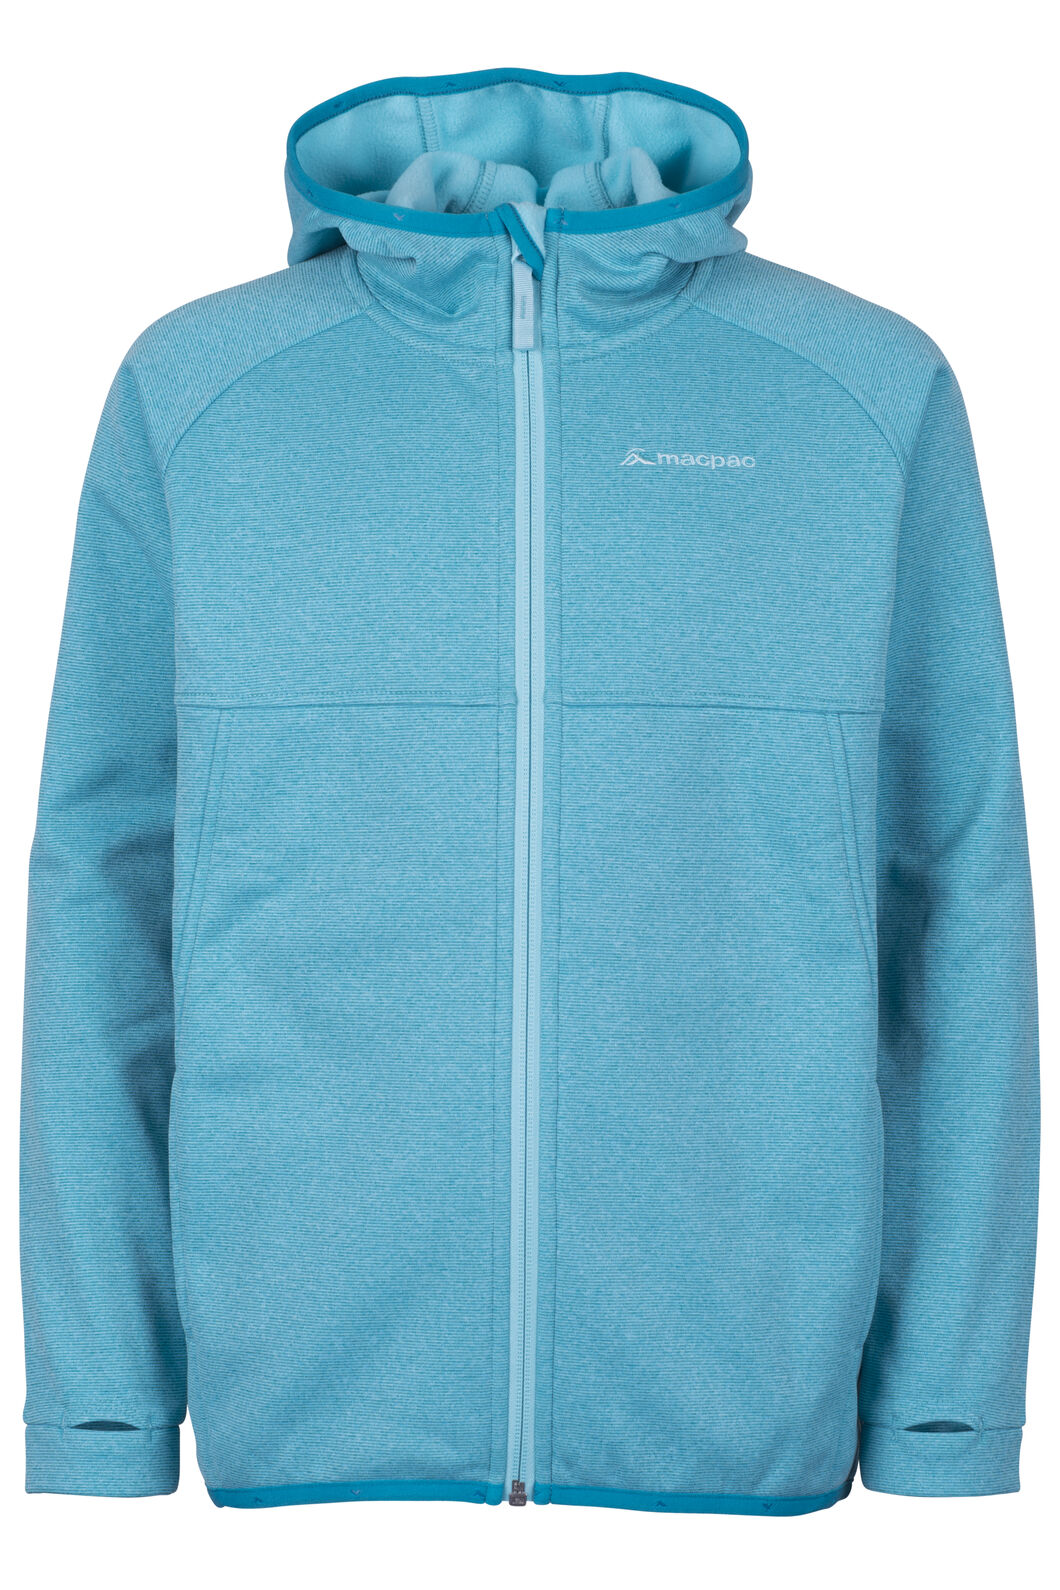 Macpac Kiwi Fleece Jacket - Kids', Enamel Blue, hi-res